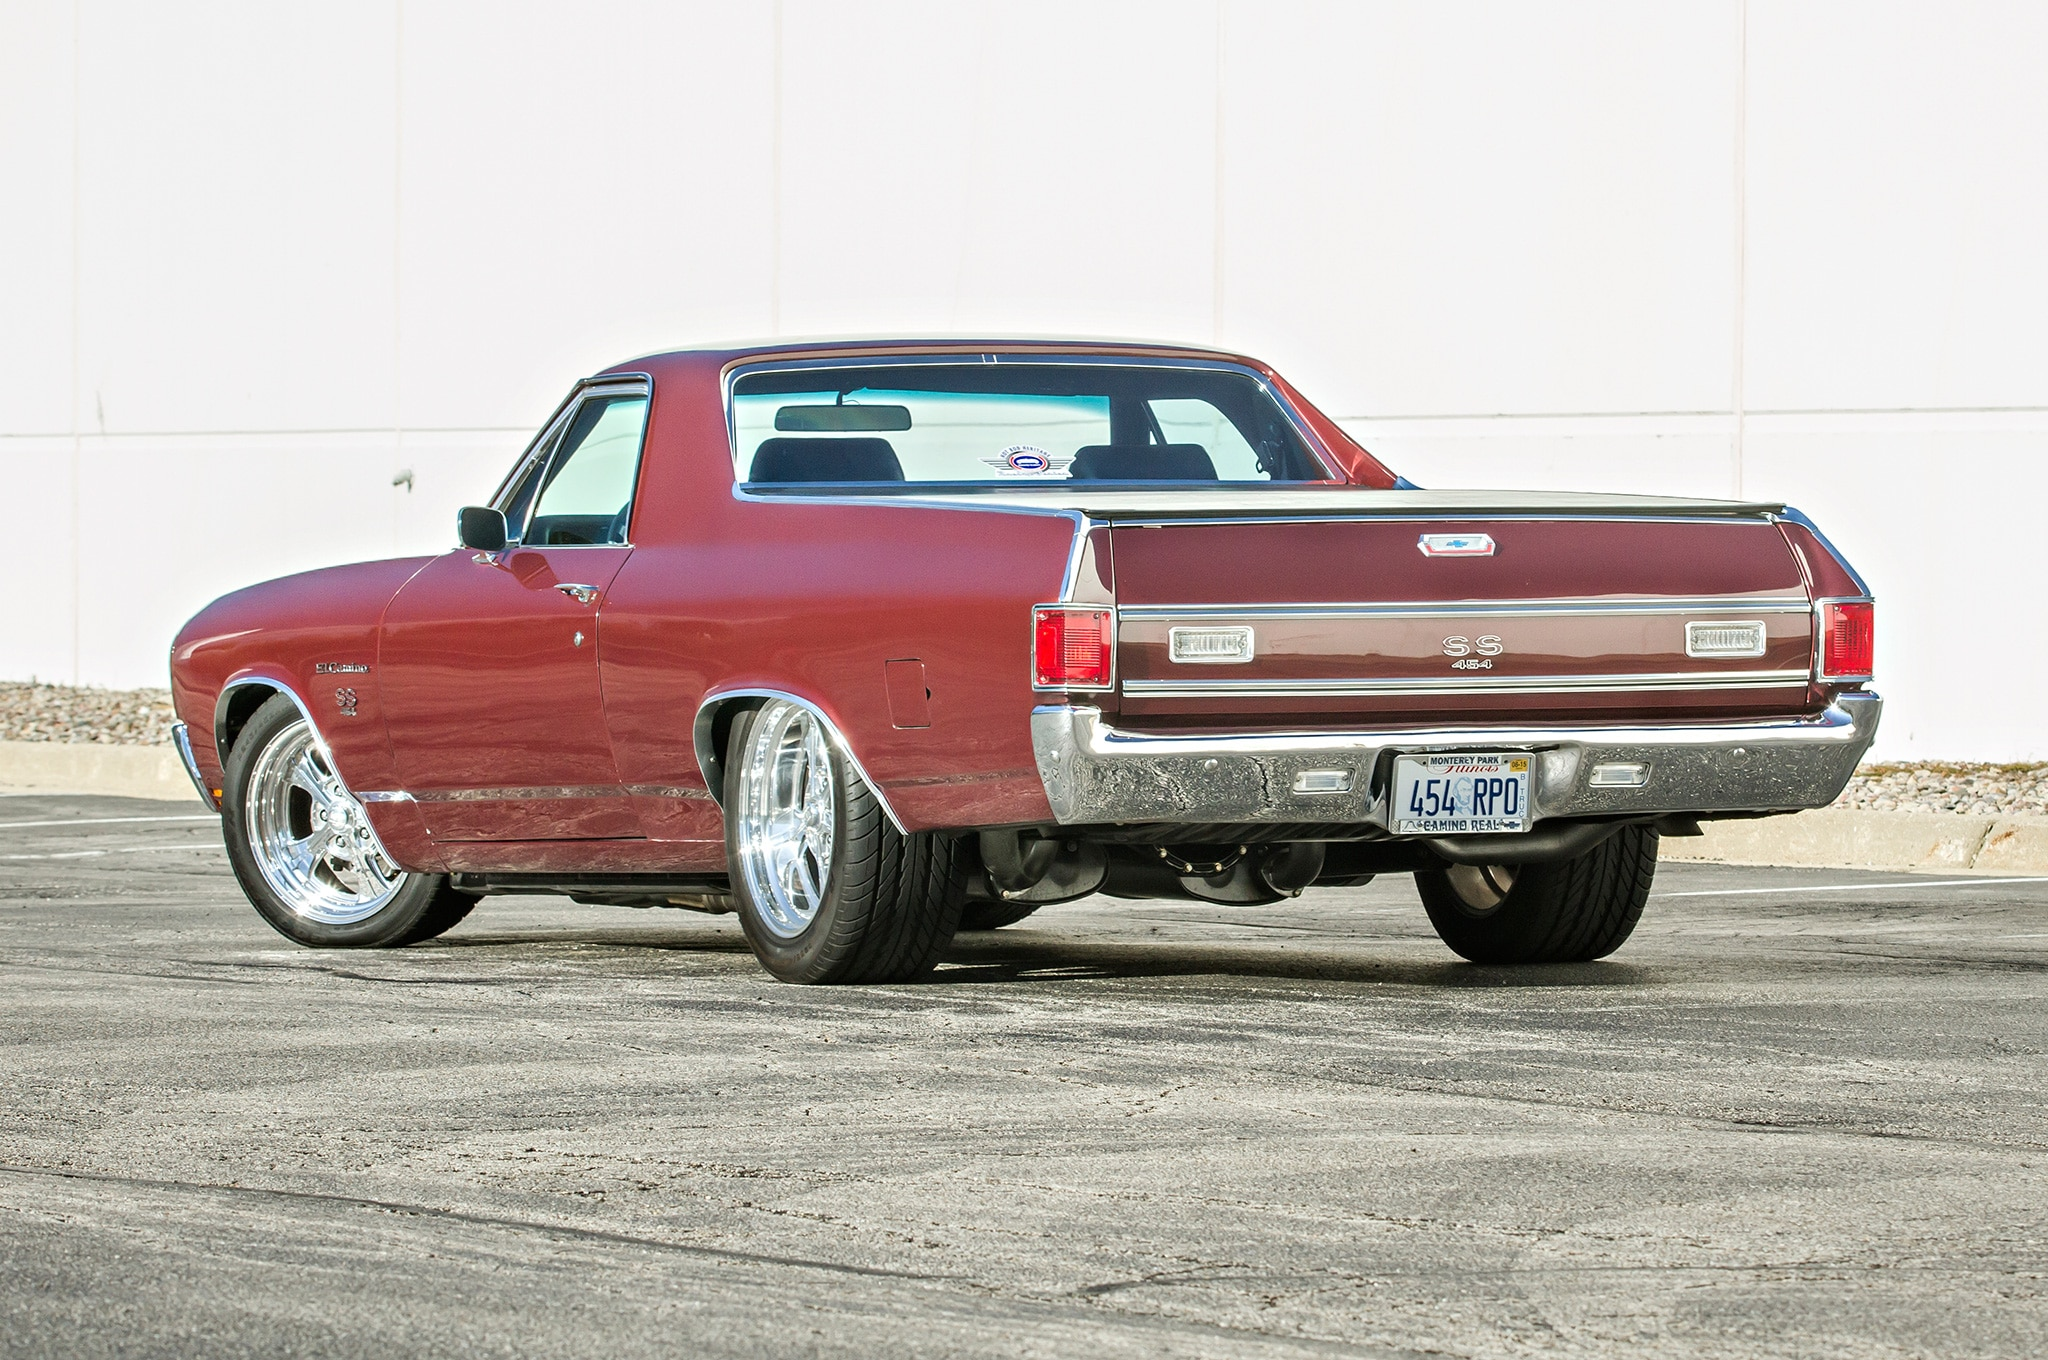 How One Enthusiast Built a 500HP 1970 Chevrolet El Camino SS